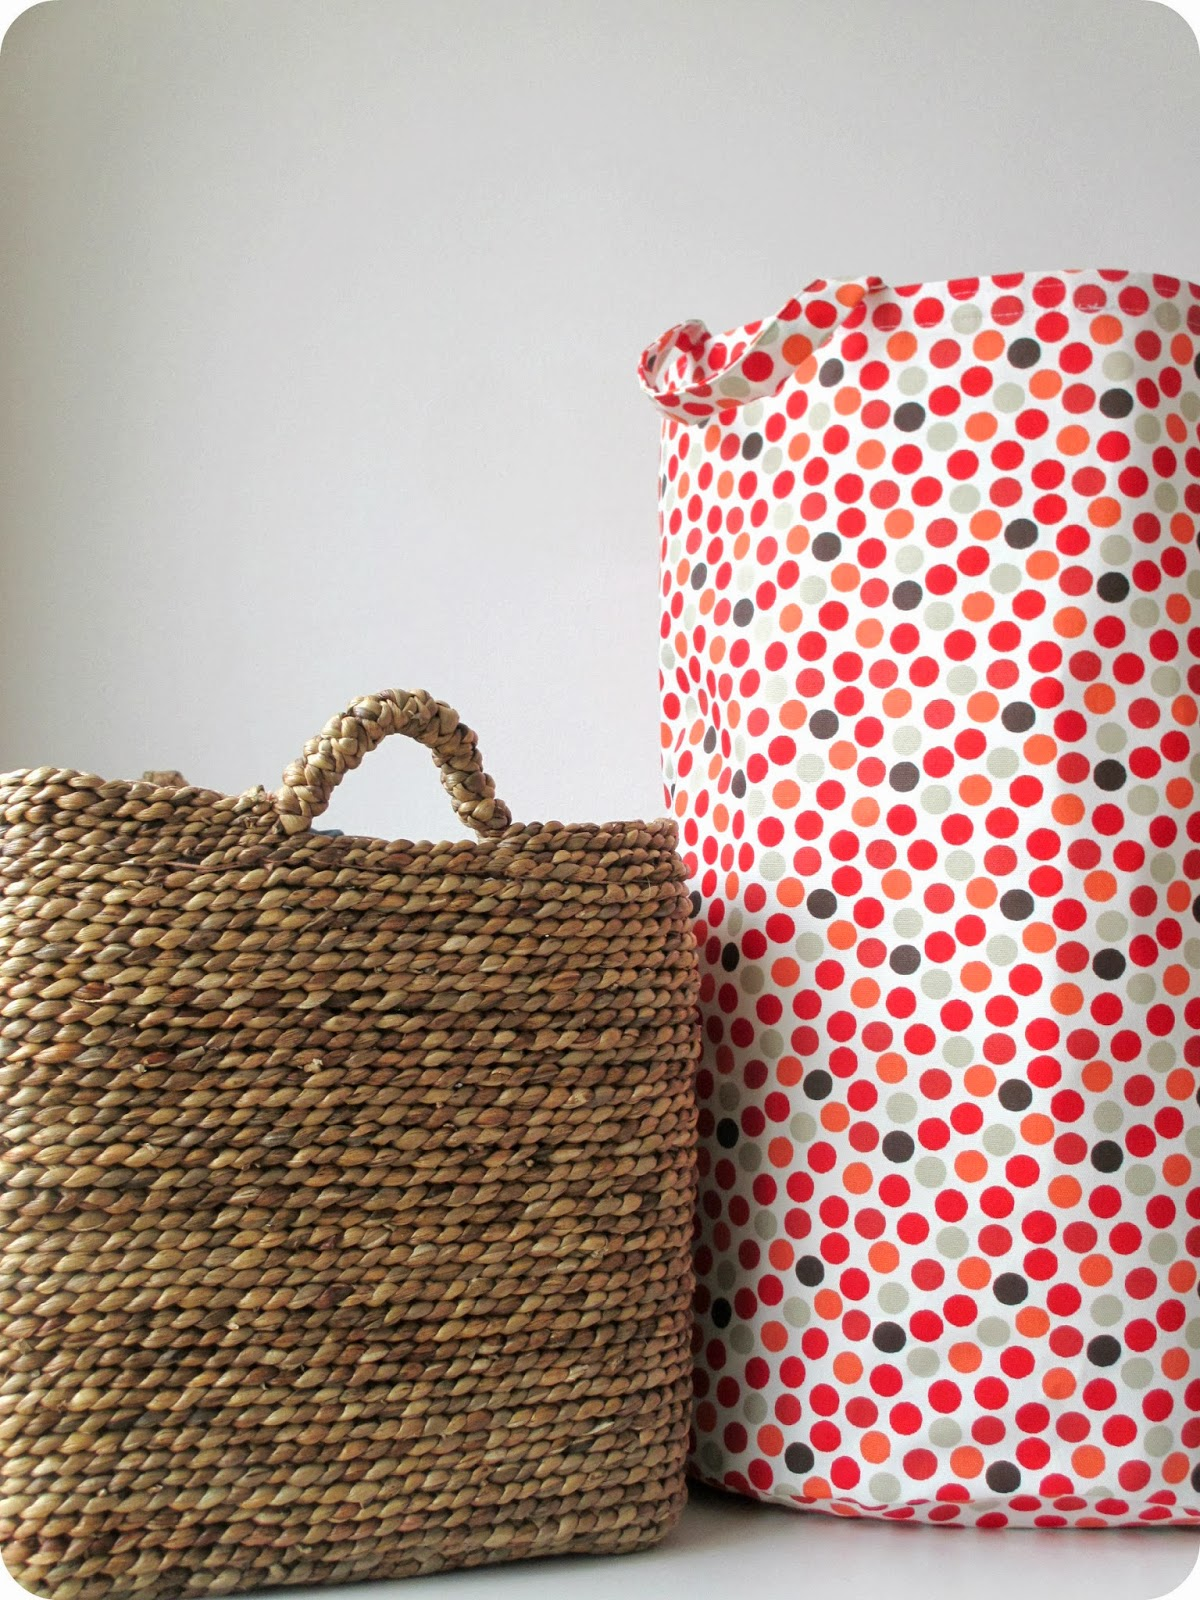 tadaam diy tuto sac de rangement en tissu. Black Bedroom Furniture Sets. Home Design Ideas